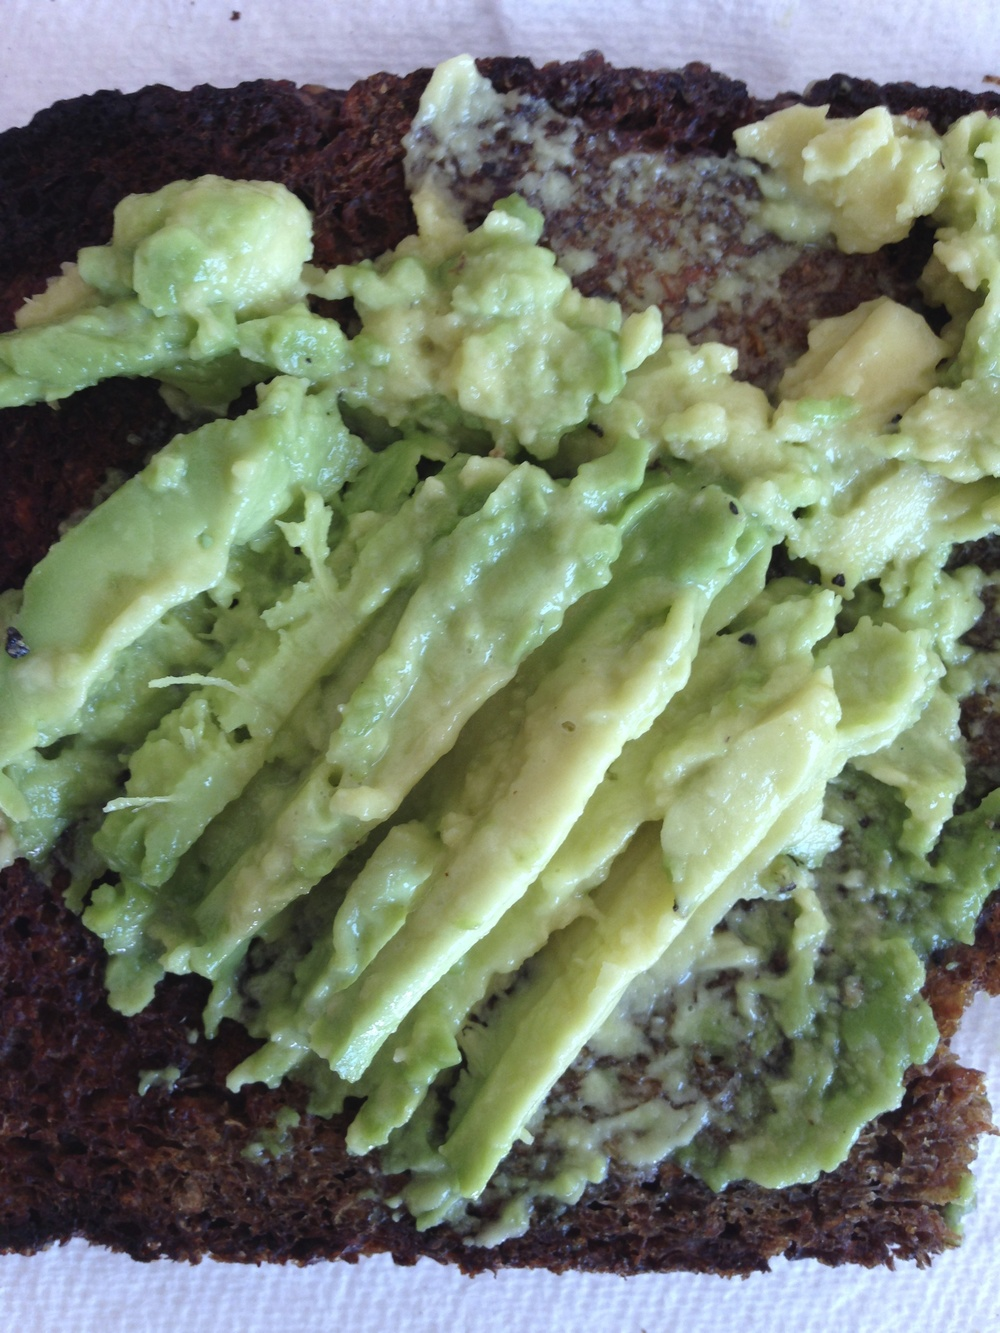 Mestemacher bread with avocado is a great option to eat at the office.  Keep the bread at your desk (it won't go bad) and bring in some avocados at the beginning of each week.